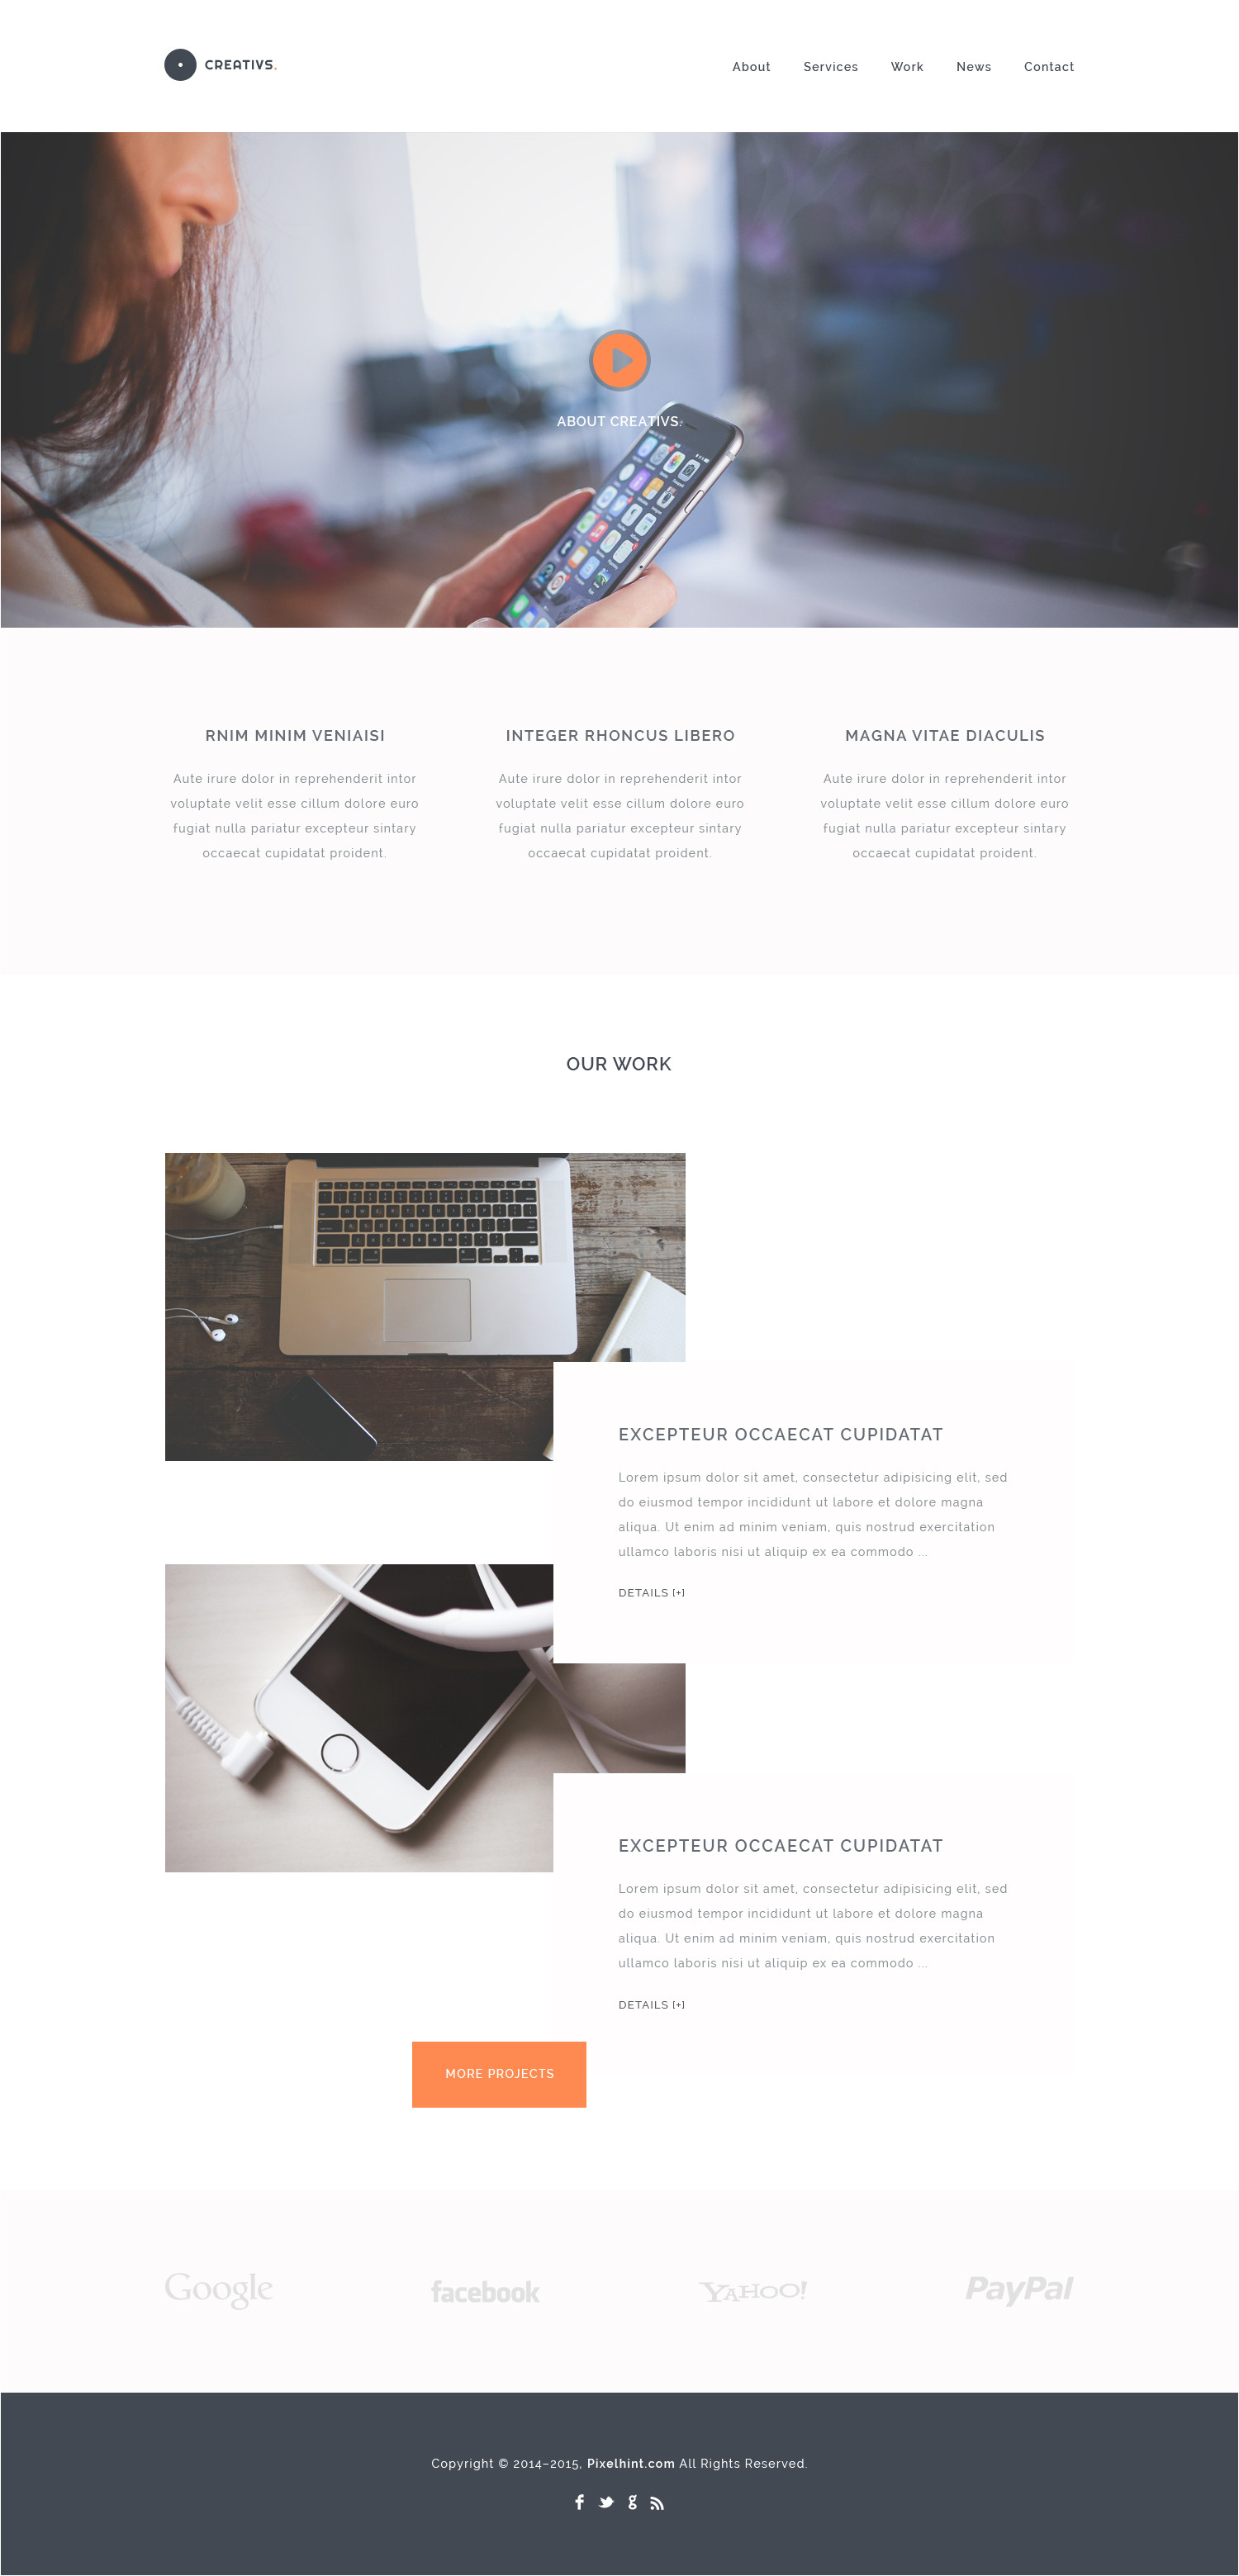 creativs free complete psd html5 website template